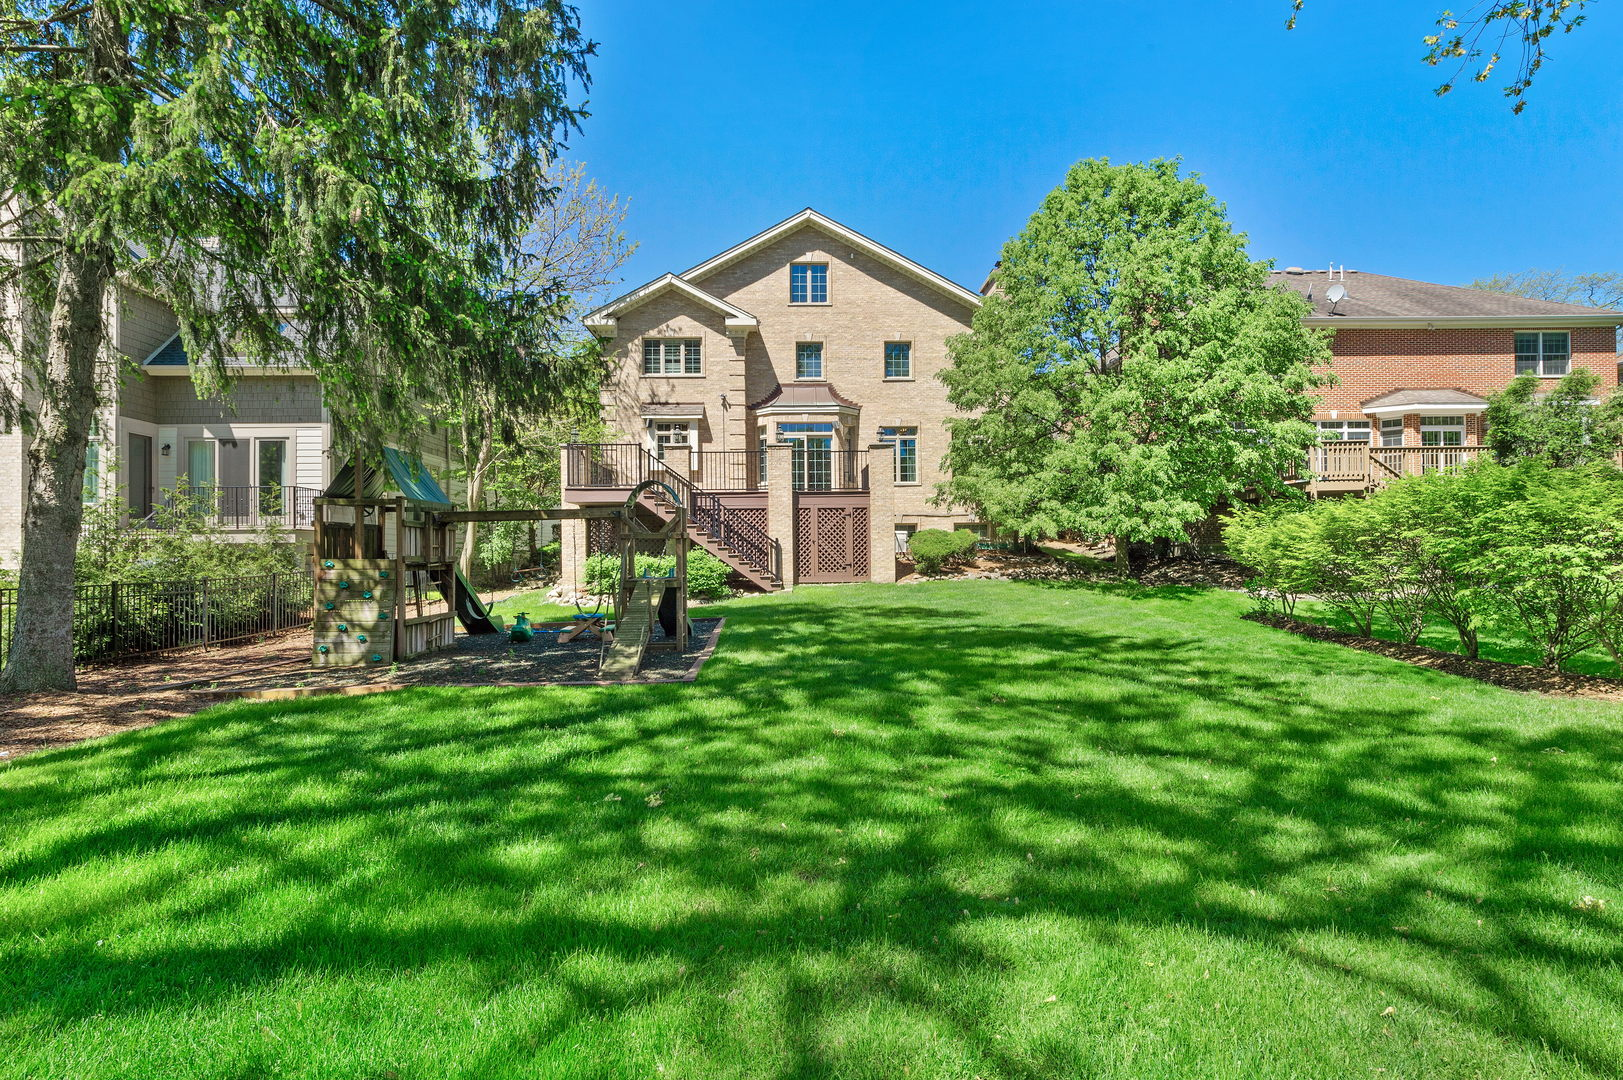 413 North Quincy, Hinsdale, Illinois, 60521